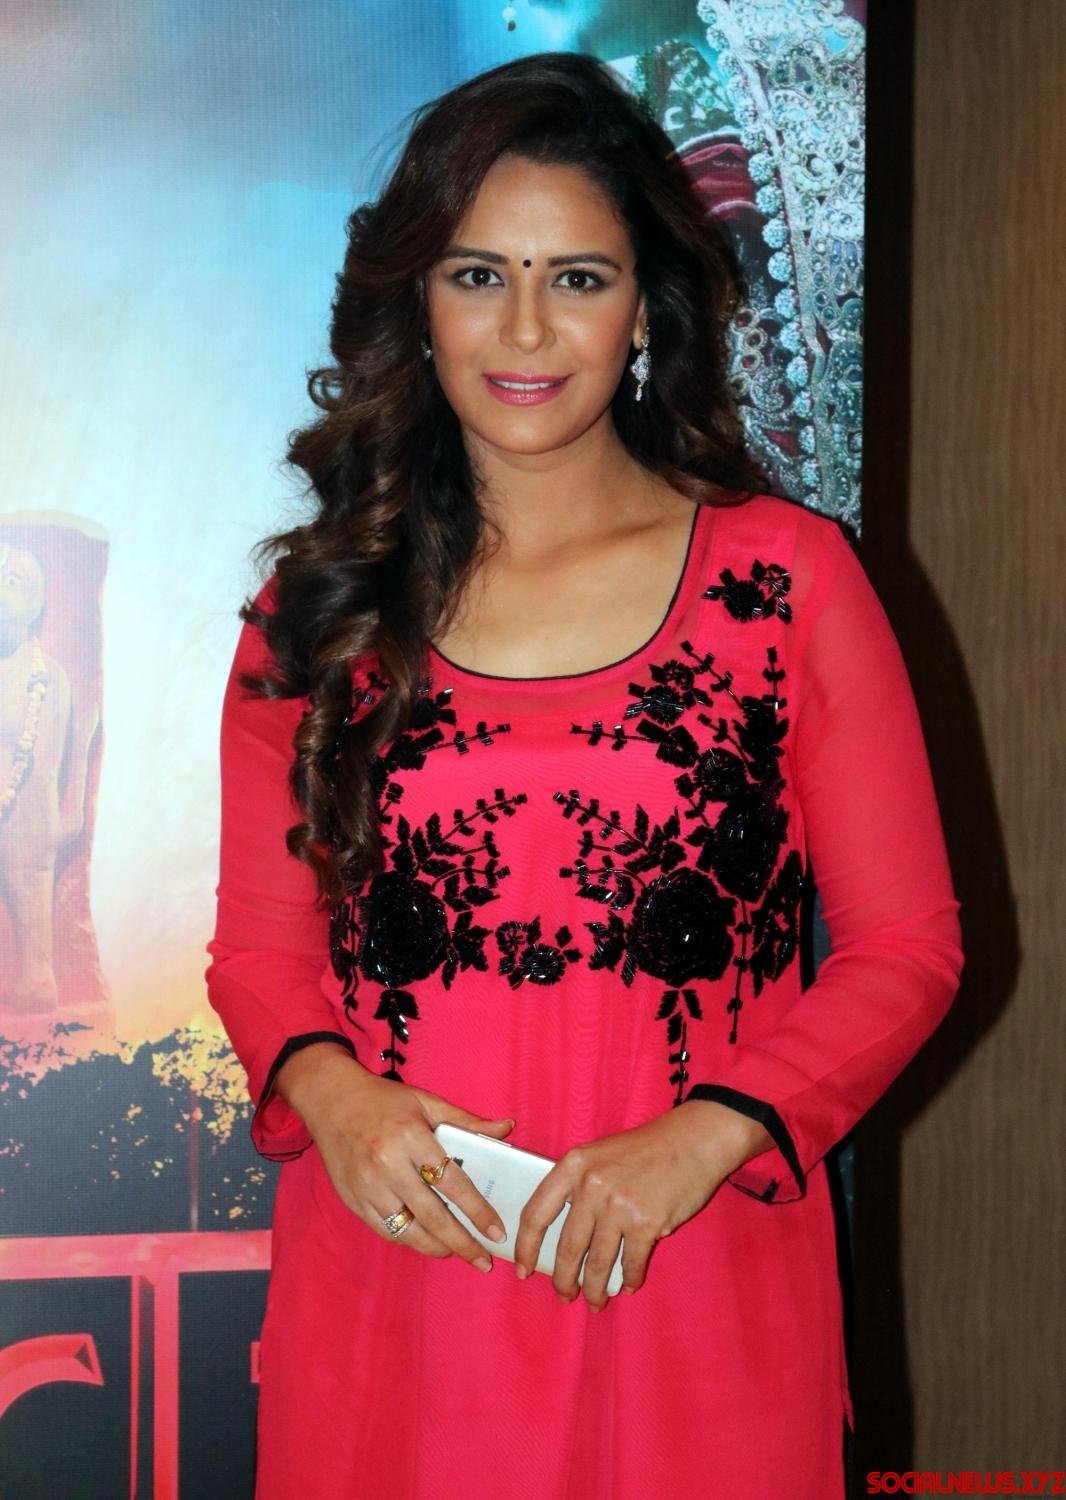 Mona singh hot pictures